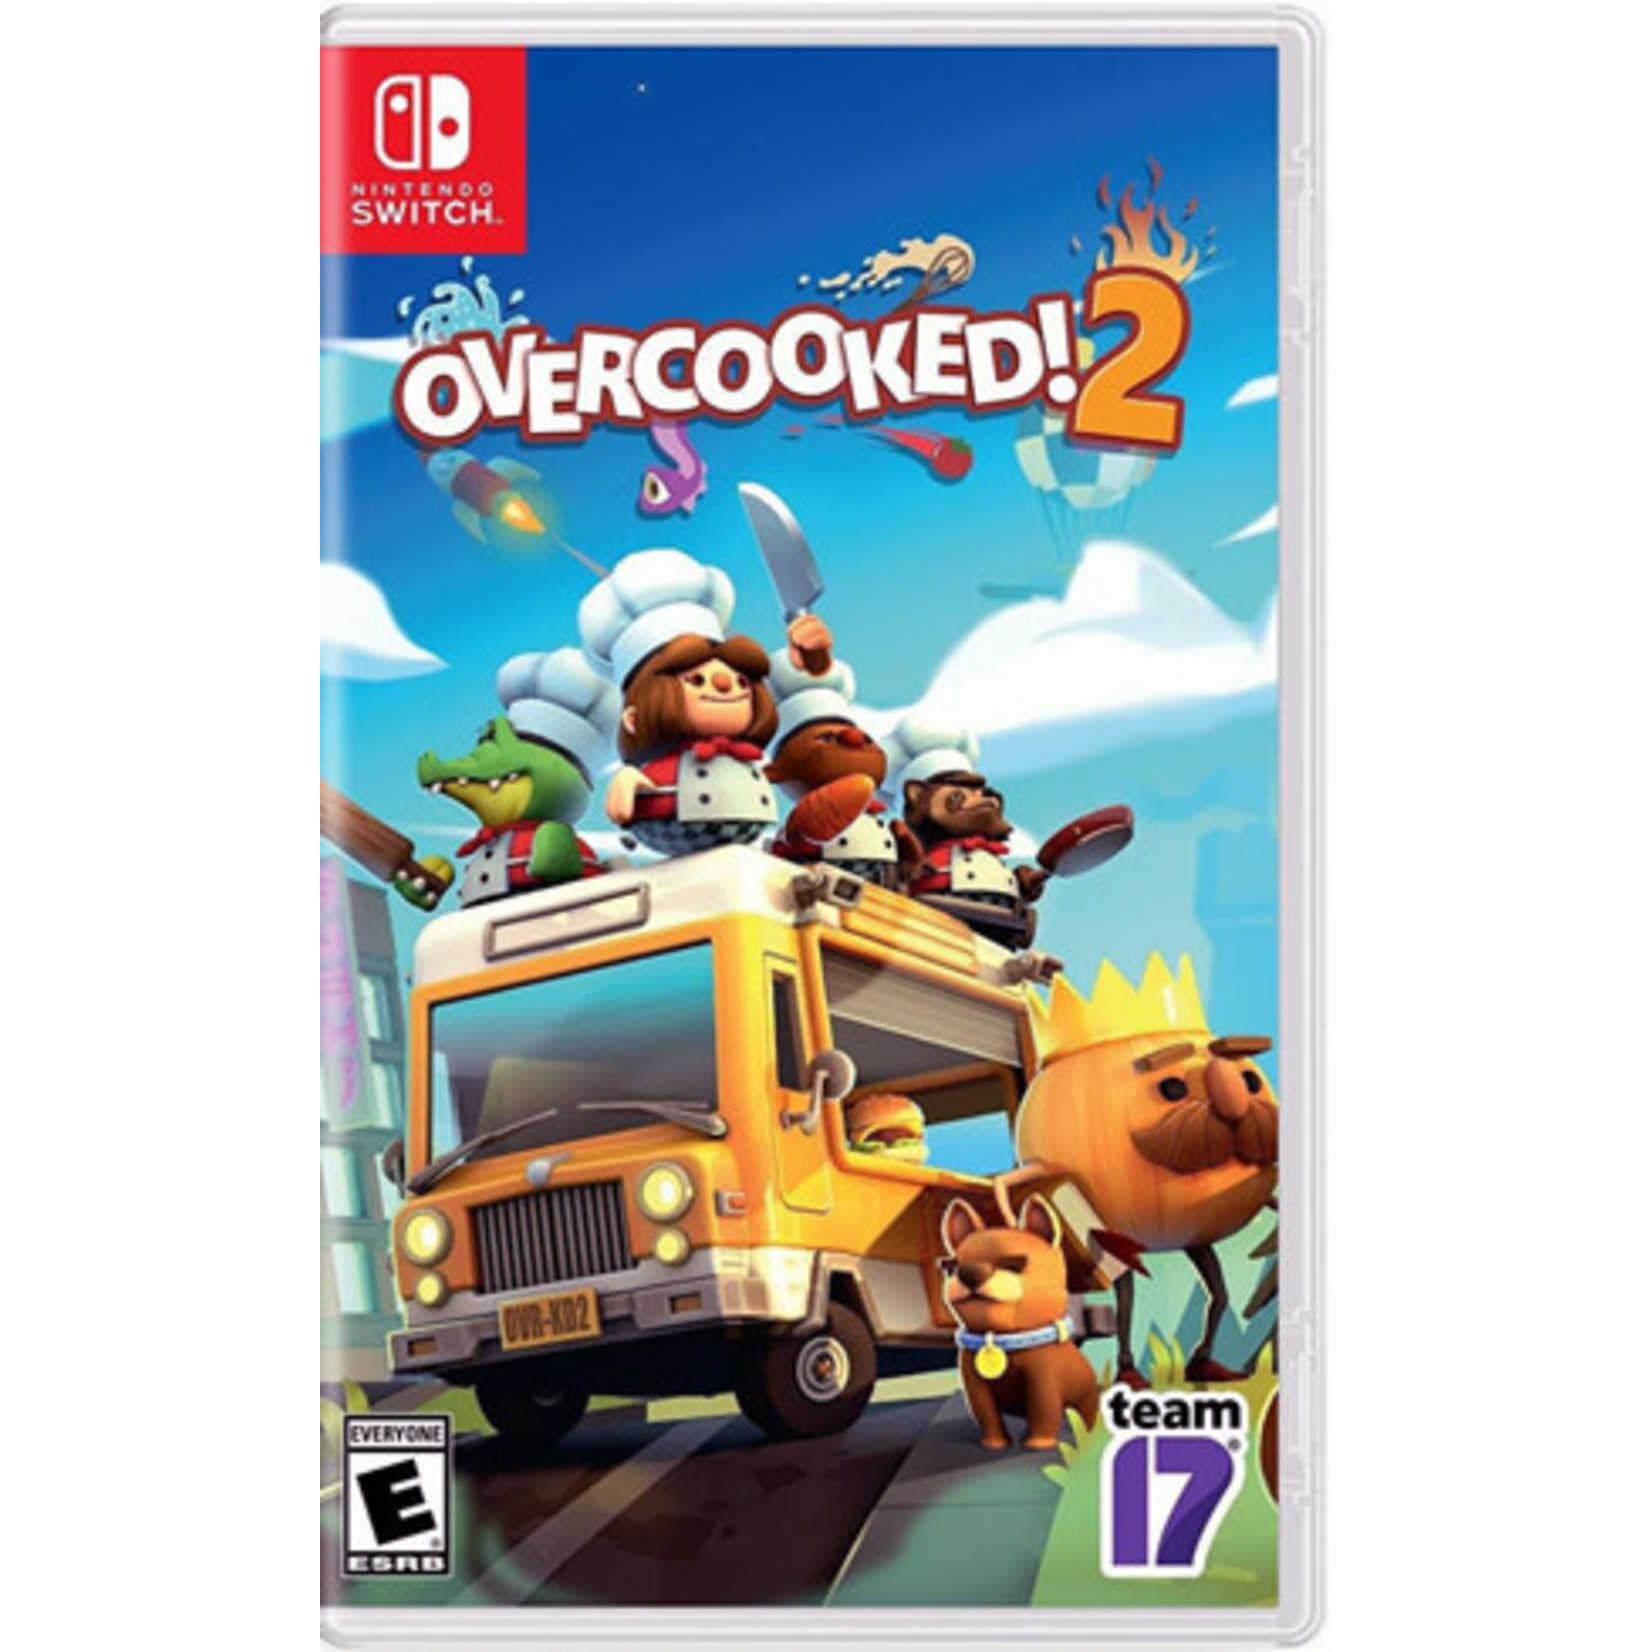 SWITCH-Overcooked! 2